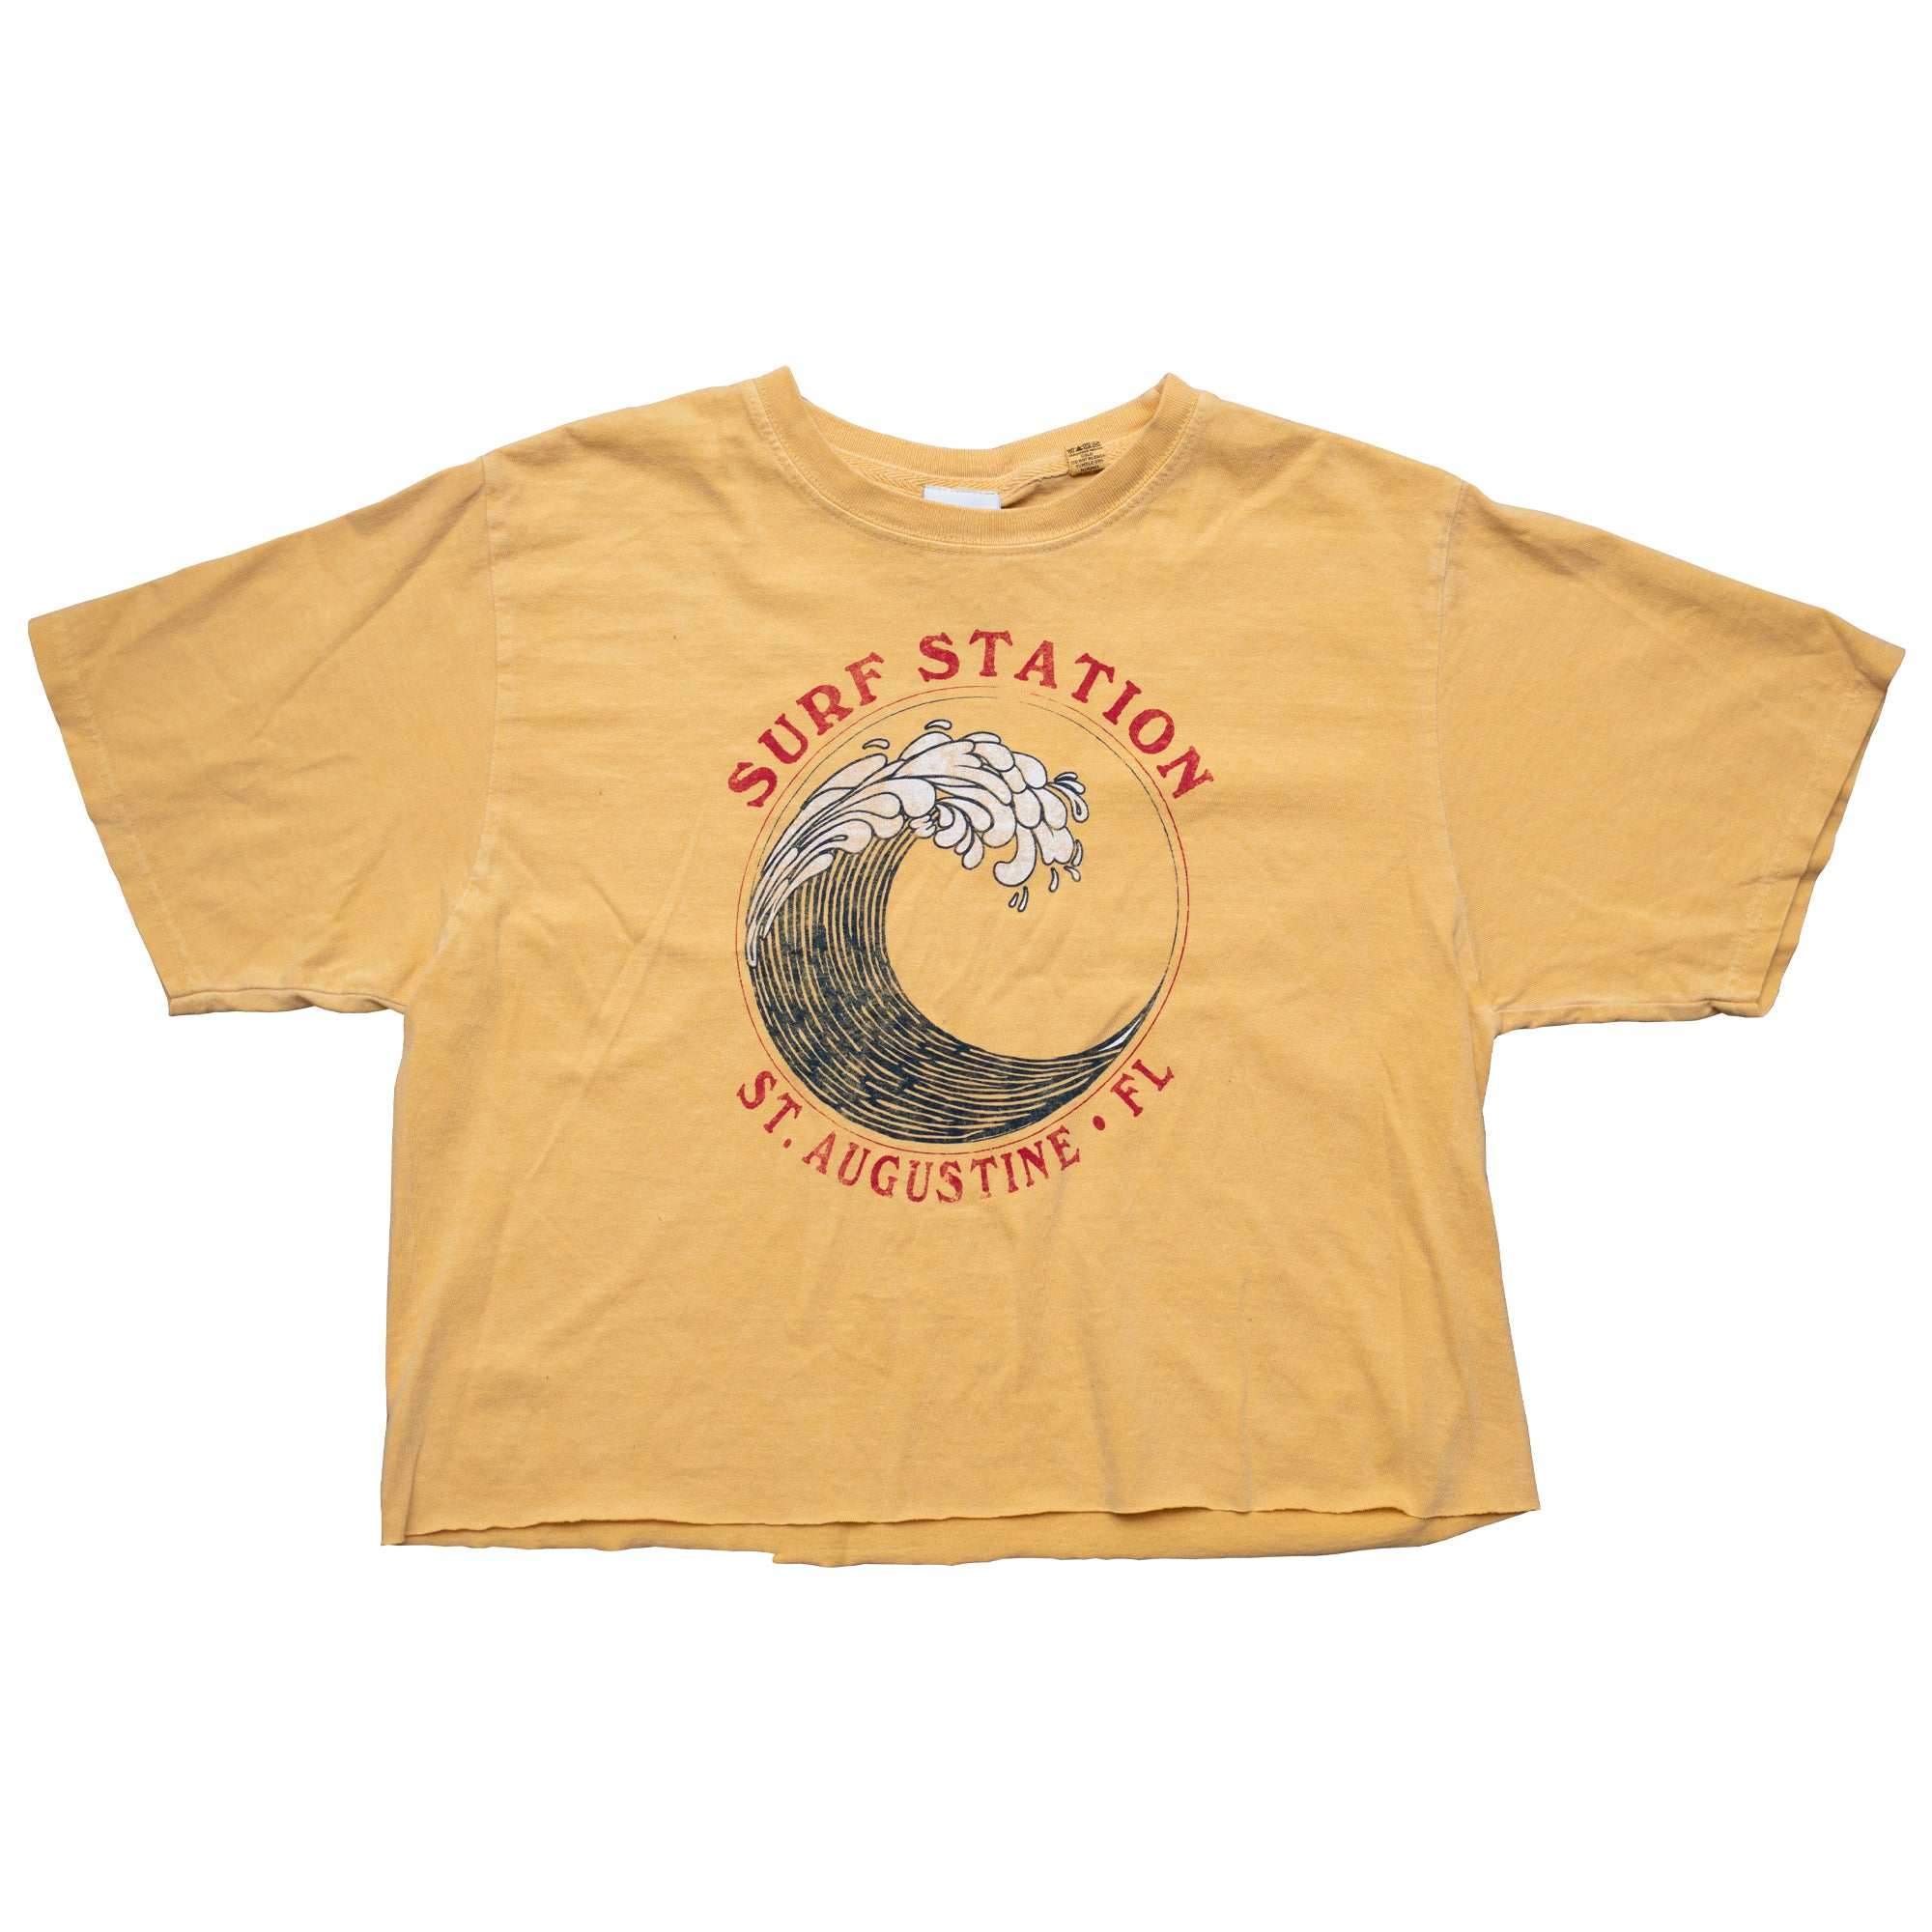 Surf Station Big Wave Women's Cropped S/S T-Shirt